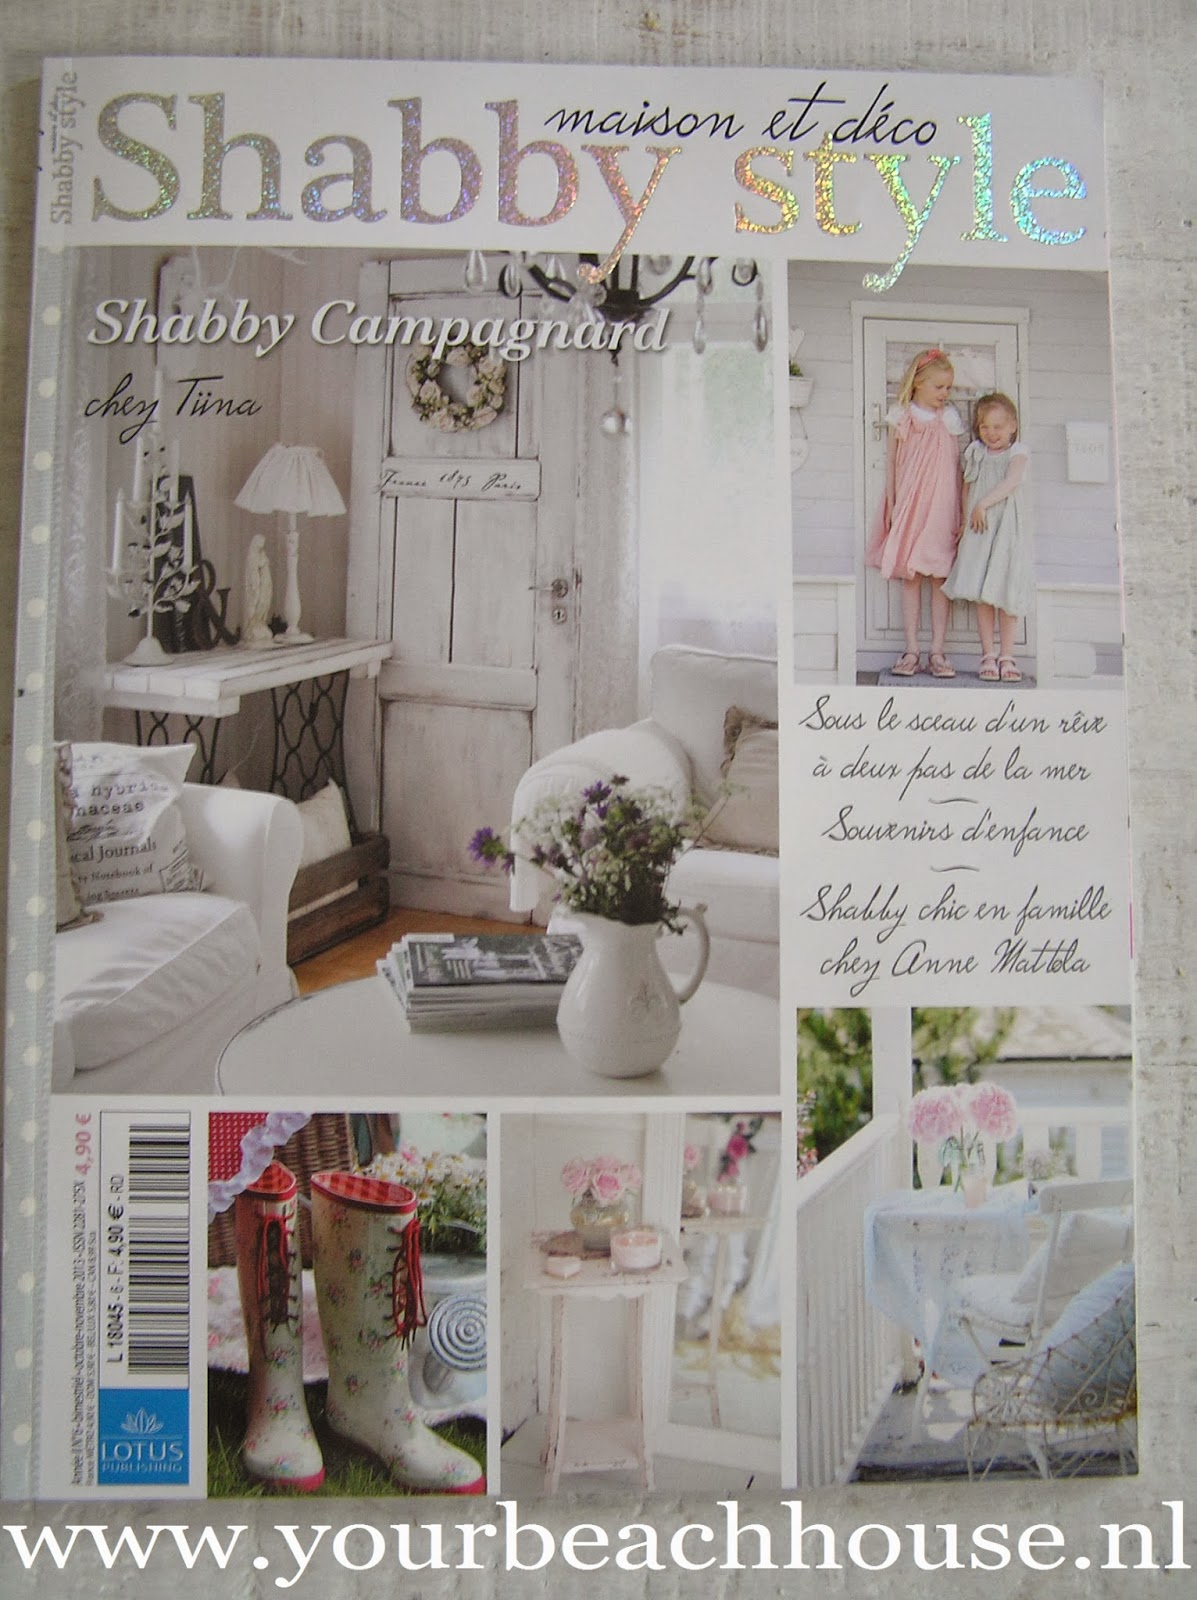 pastels and whites our home featured in magazine shabby style binnenkijker van ons huis in. Black Bedroom Furniture Sets. Home Design Ideas